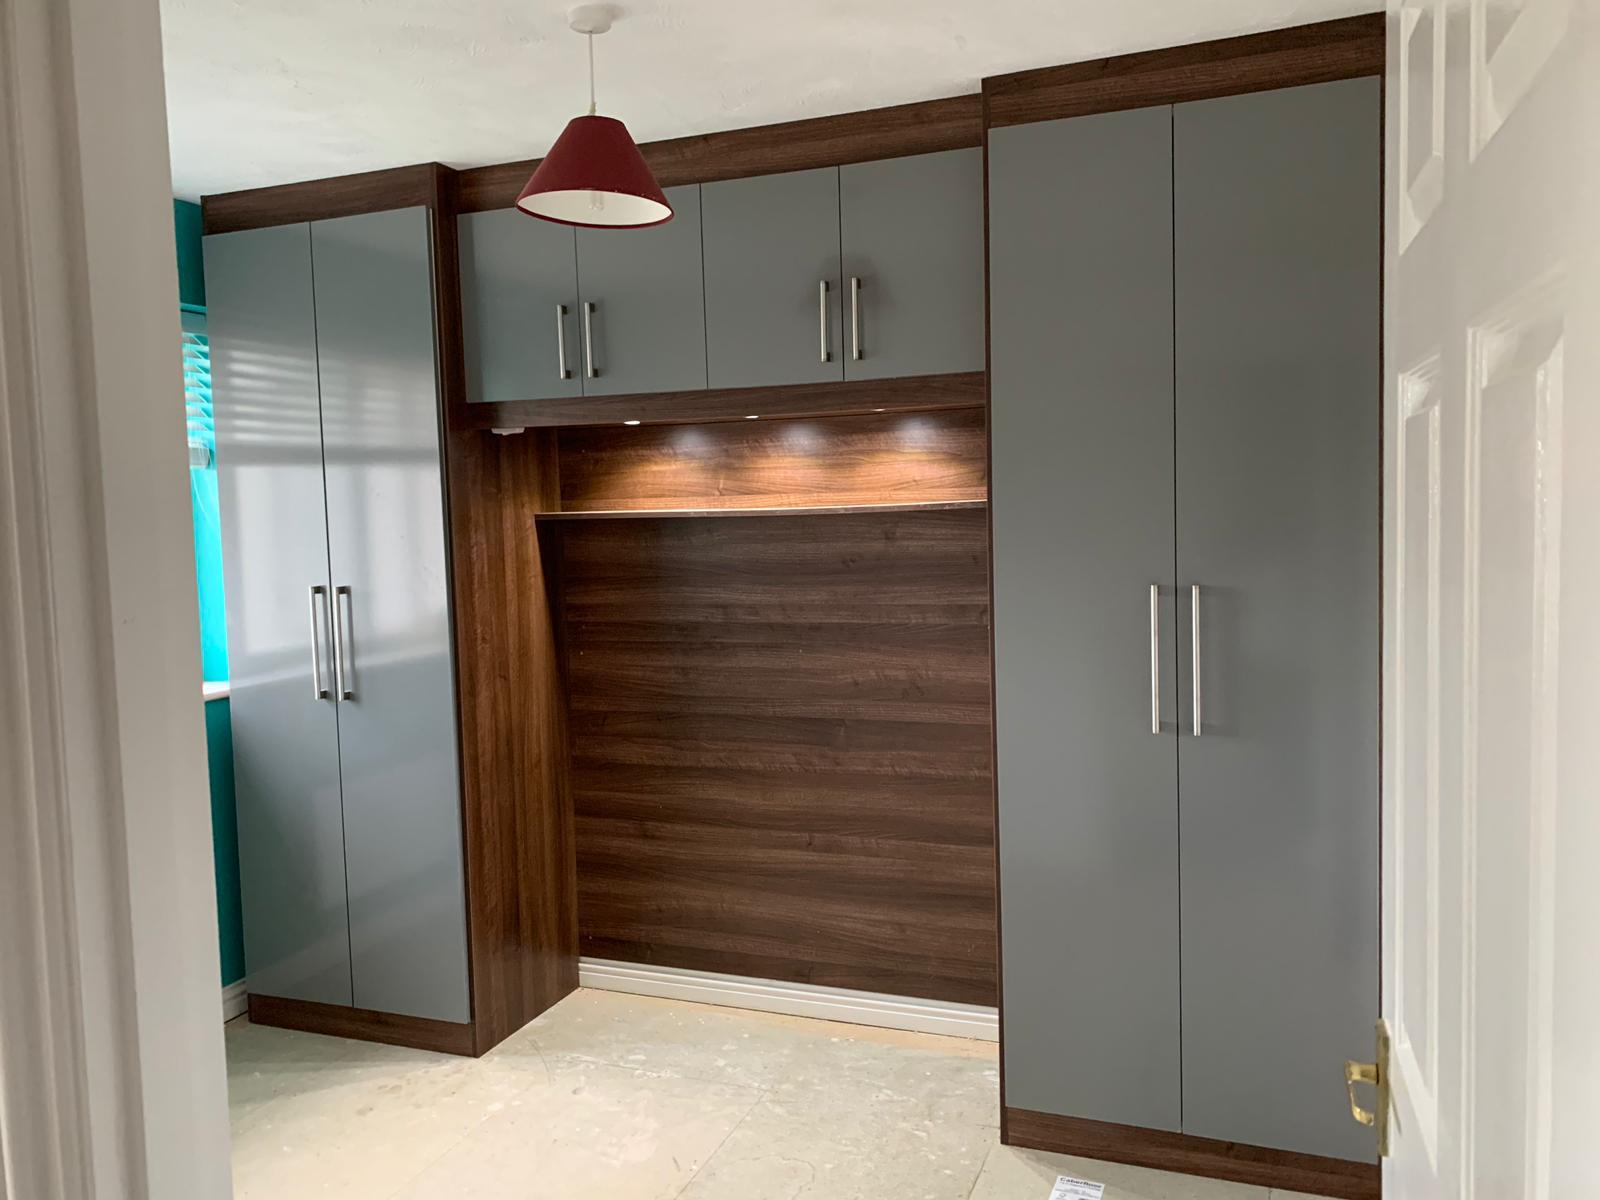 Two Tone Bespoke Fitted Wardrobe unit utilizing a High Gloss With Premium LED Lighting